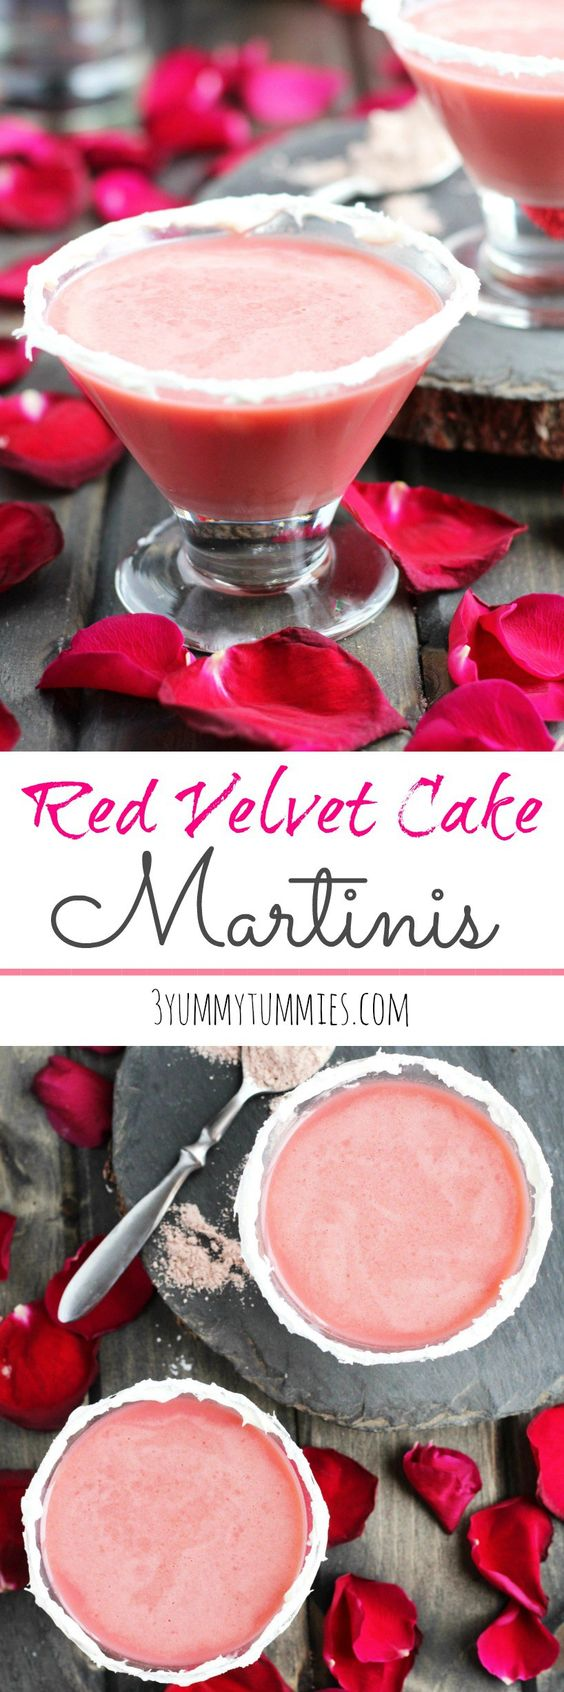 Red velvet cake martinis recipe red velvet cakes for The perfect drink mixer